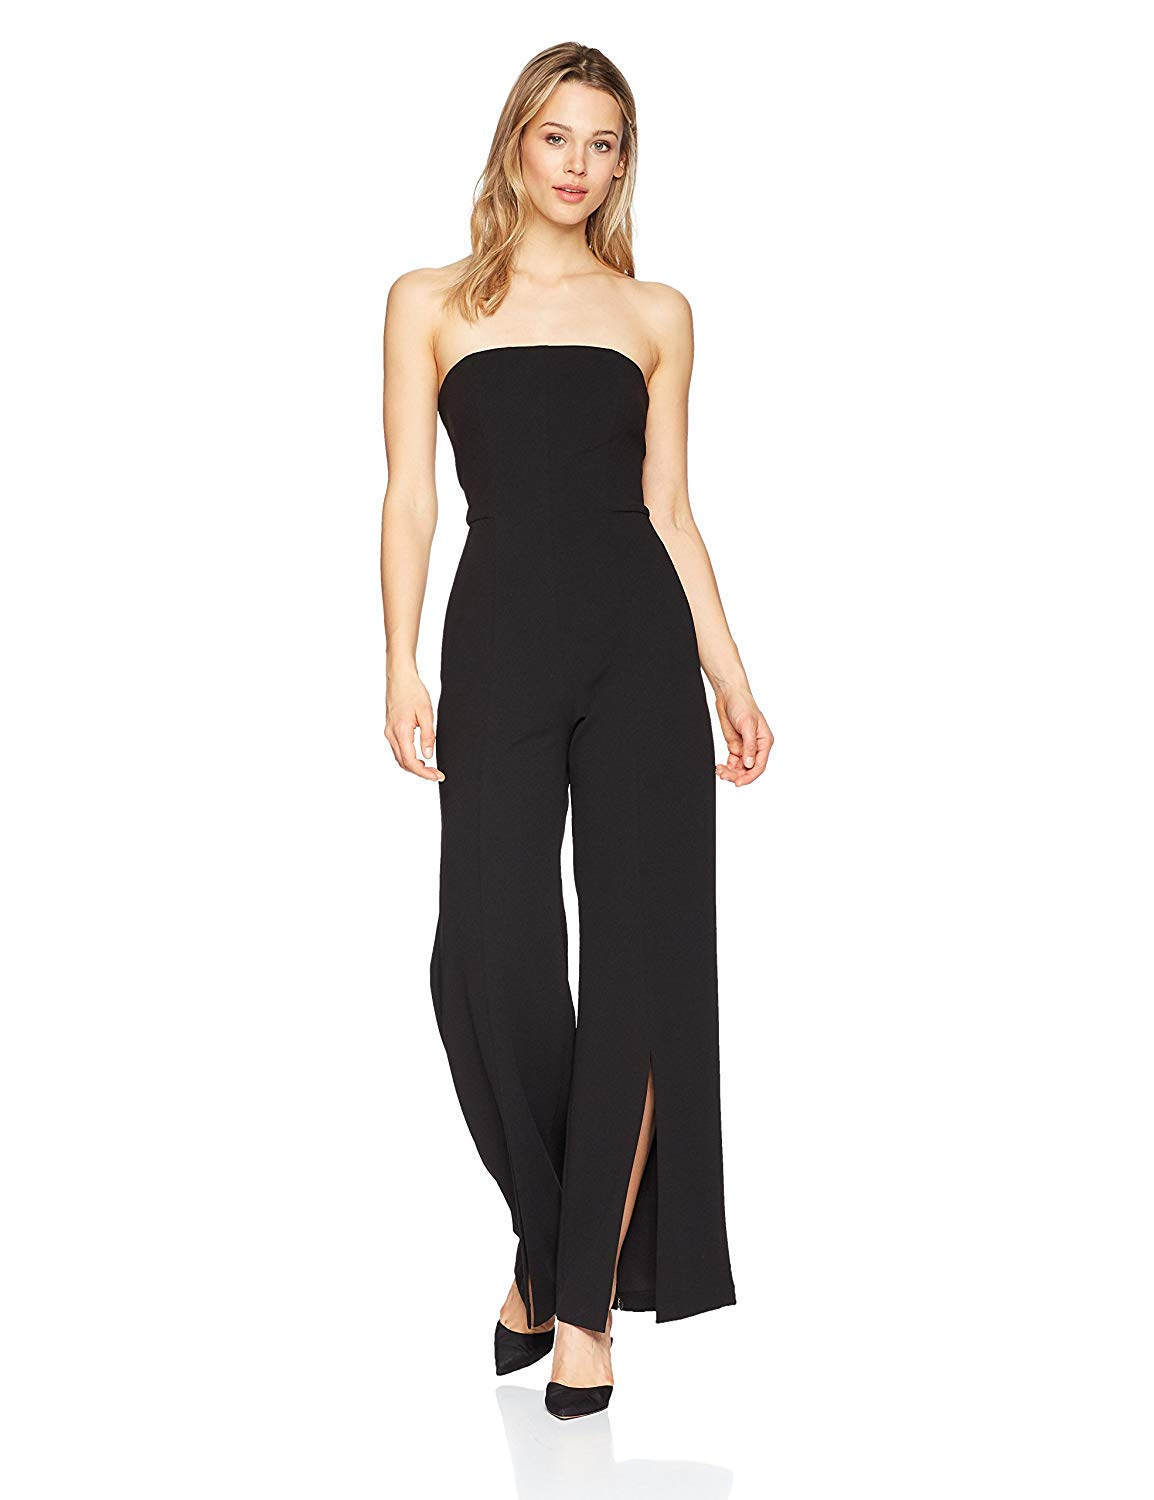 74be78f4aef9 Get Quotations · Donna Morgan Women s Strapless Crepe Jumpsuit